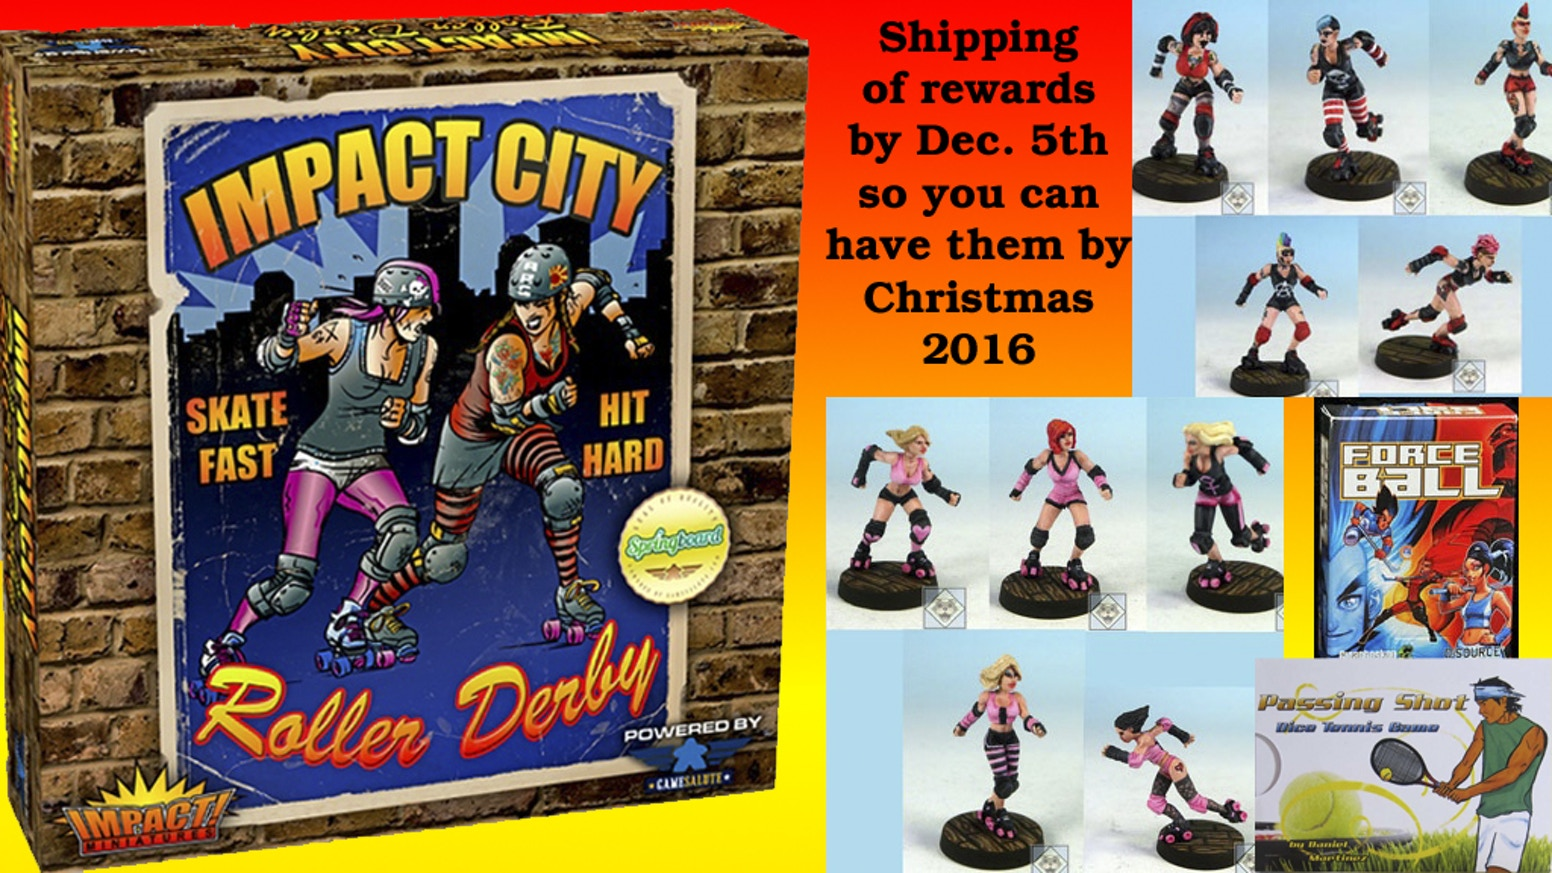 New resin roller derby miniatures with a board game that captures the action of roller derby shipped out for Christmas 2016